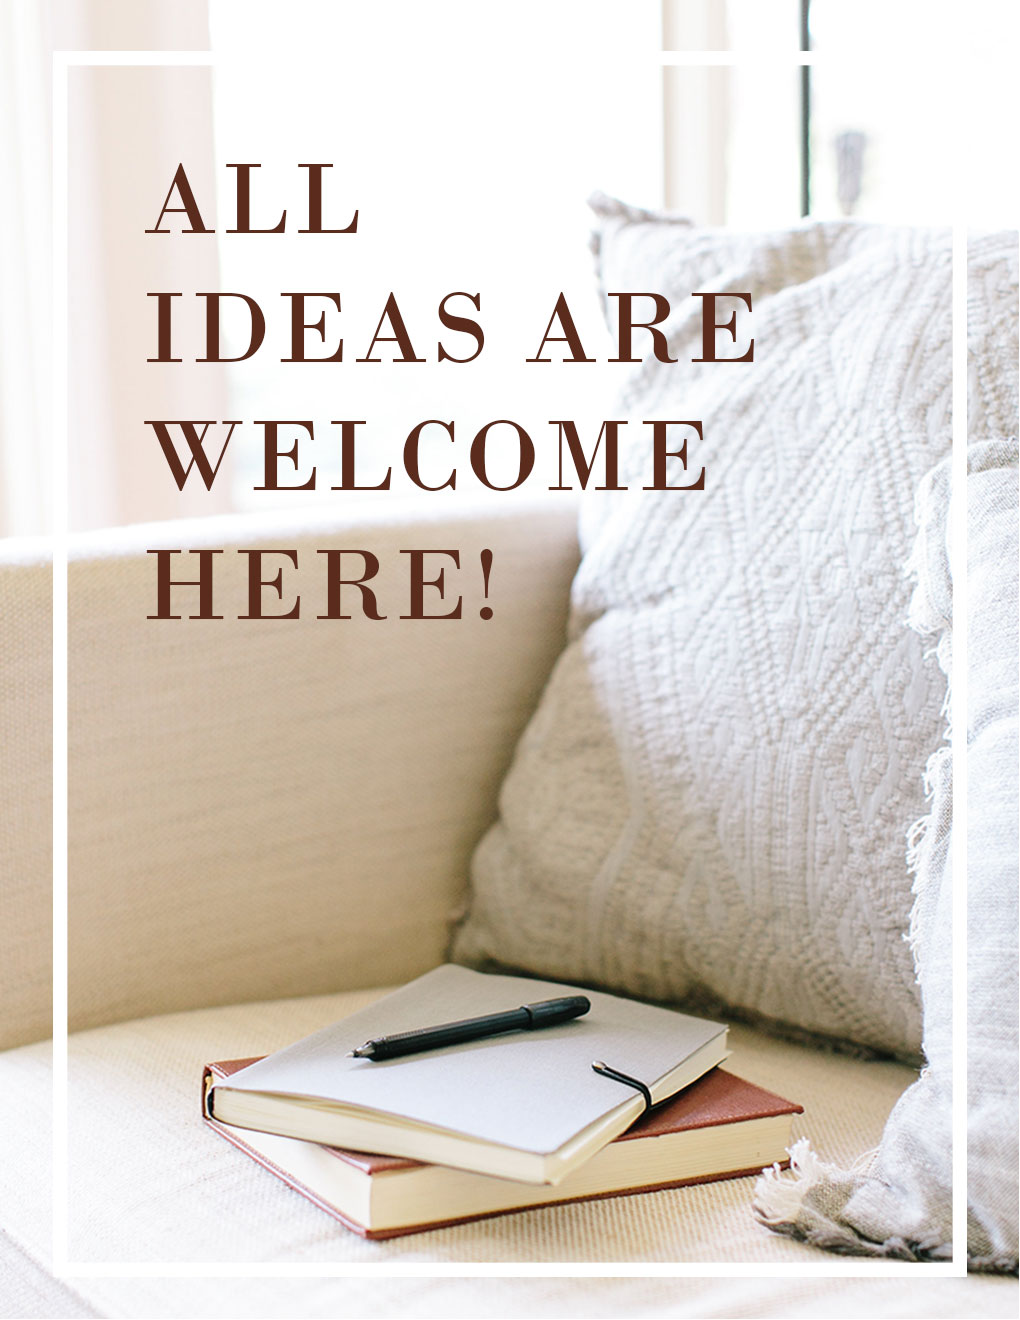 All Ideas Are Welcome Here - Poster